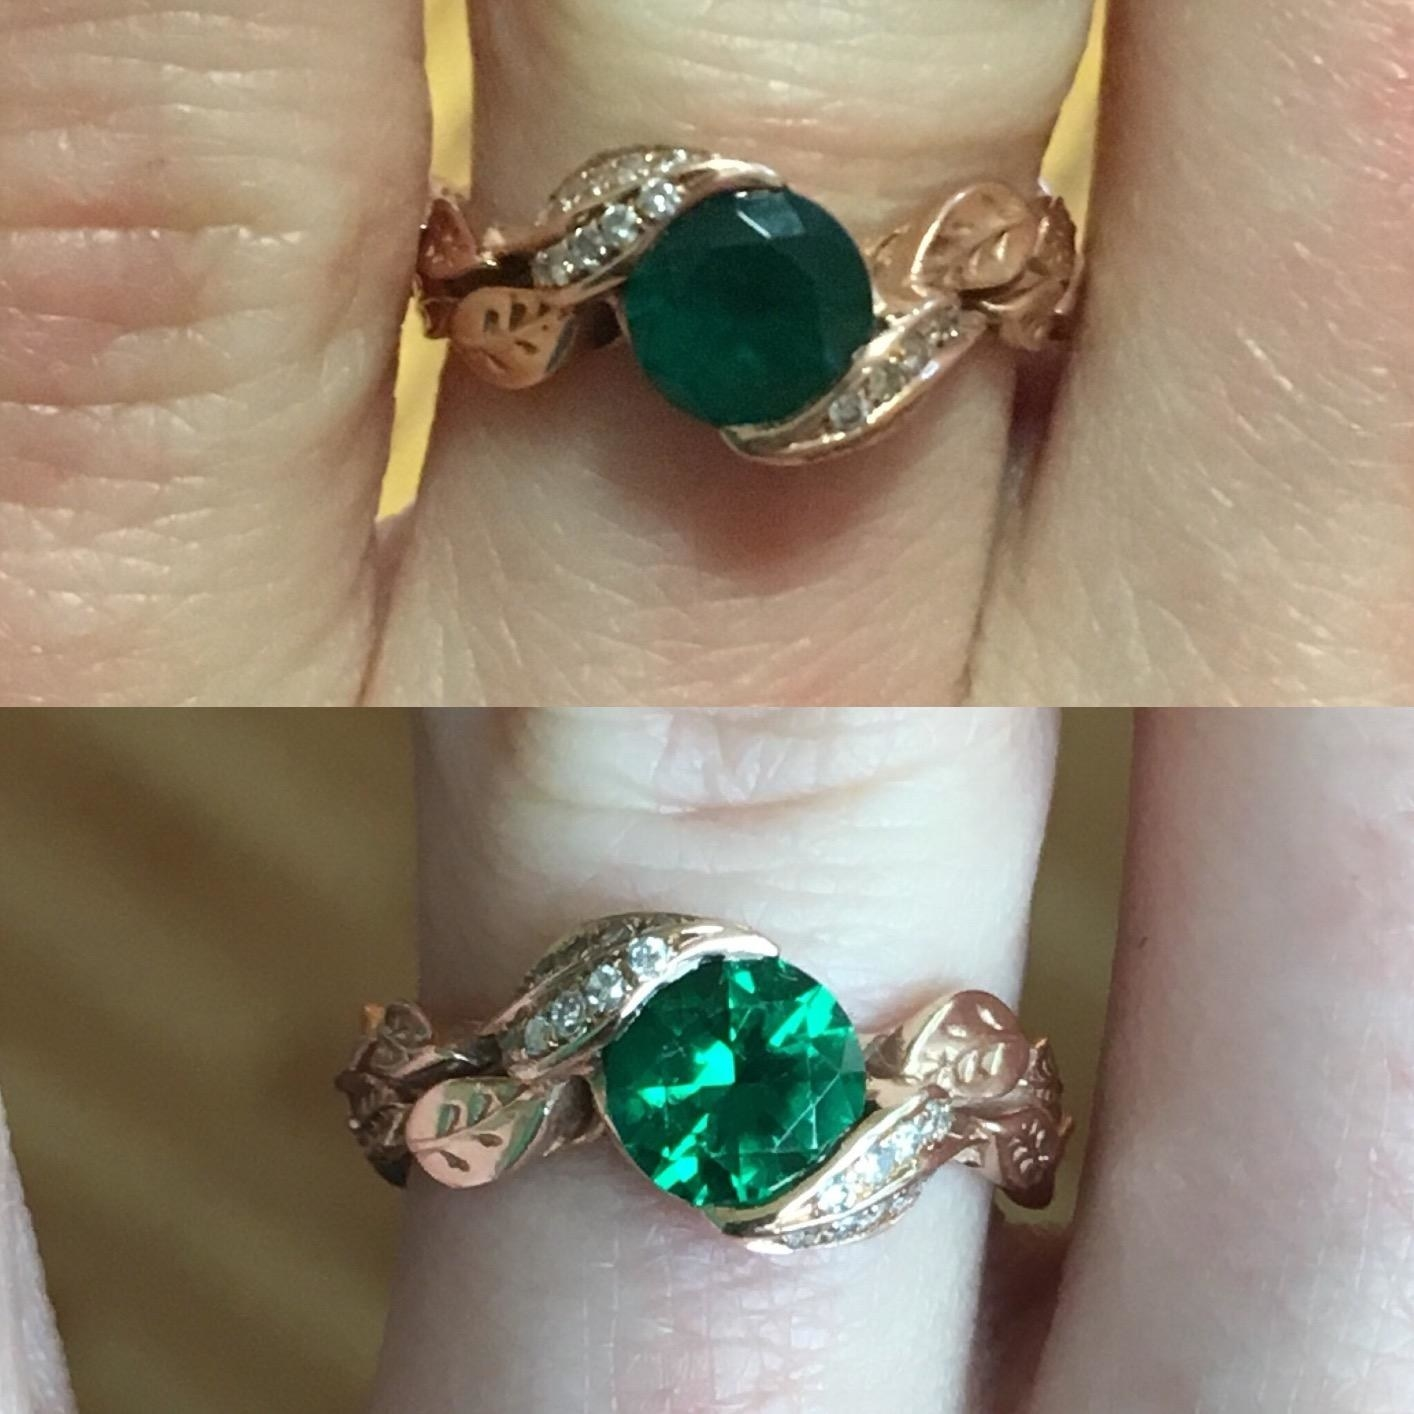 Reviewer photo showing before-and-after results of using jewelry cleaning pen